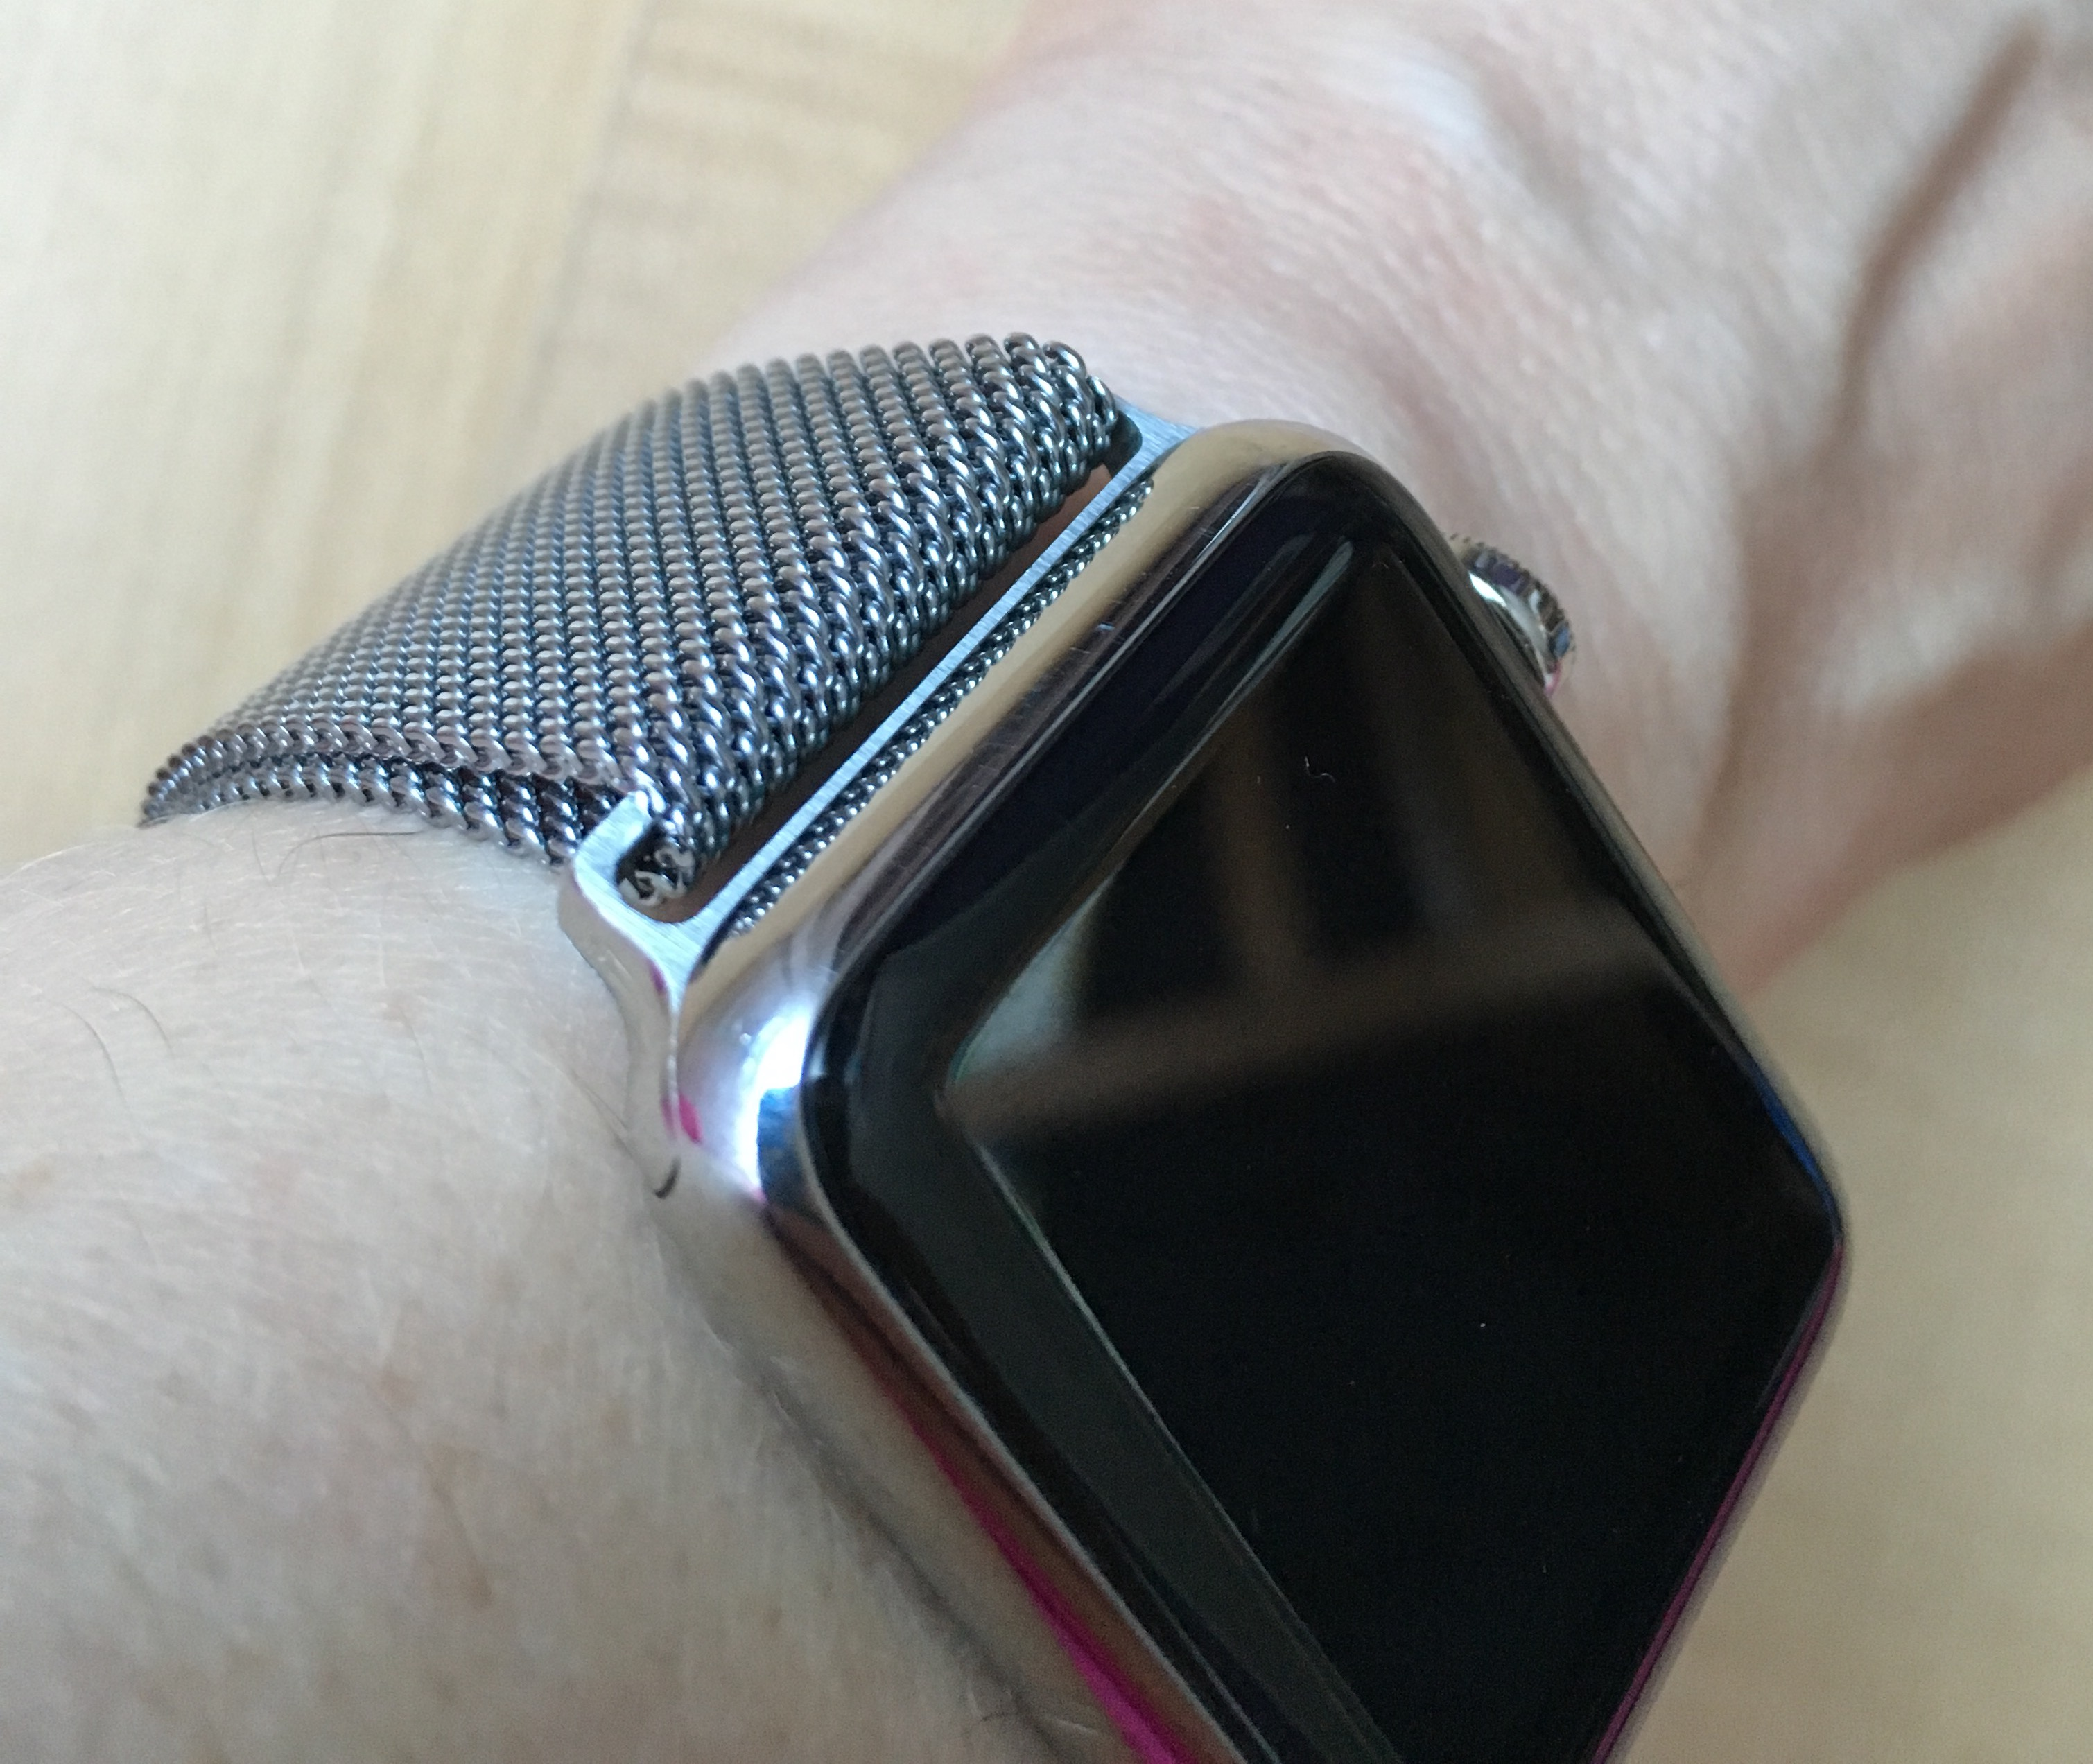 milanese loop lesterchan blog apple watch o watches box back net